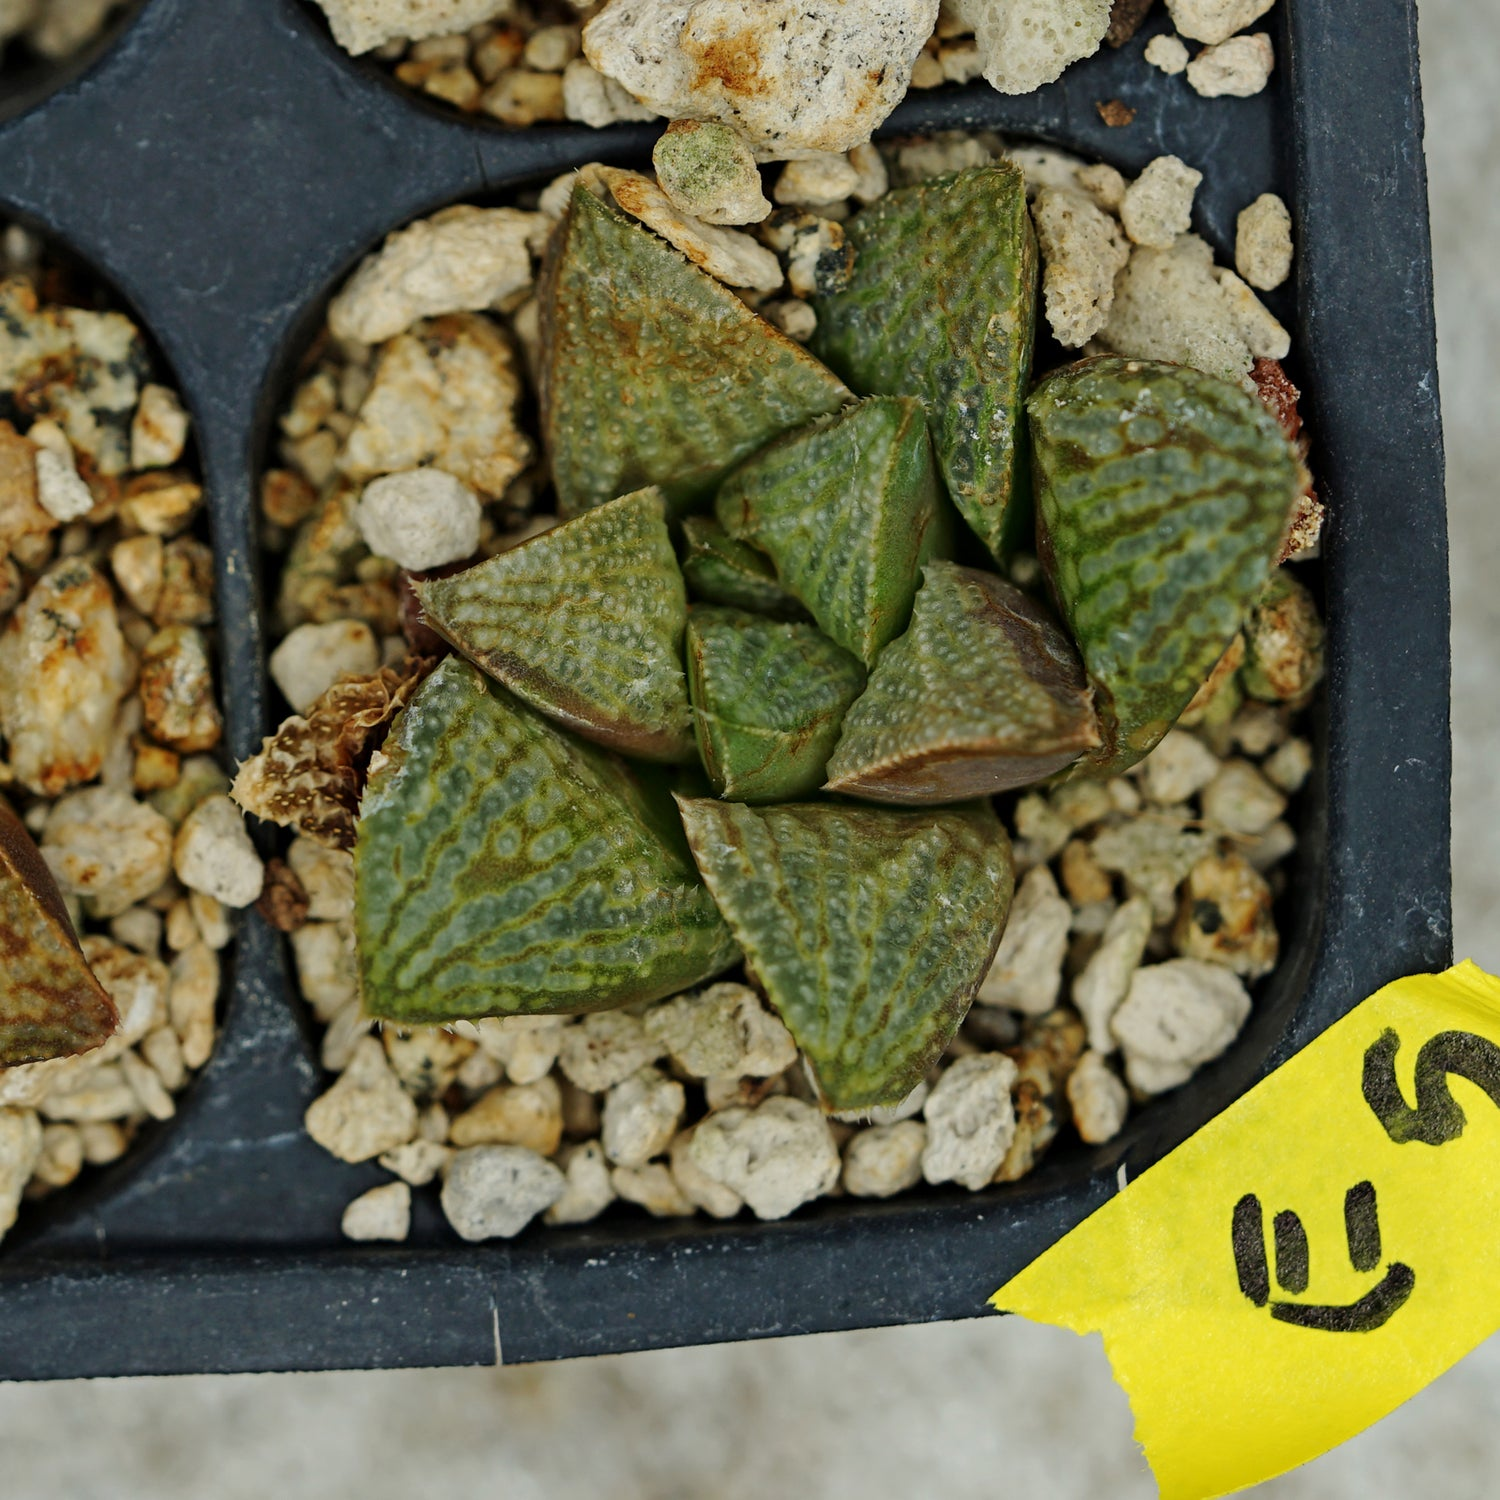 Haworthia hybrid series PP230, 2 siblings